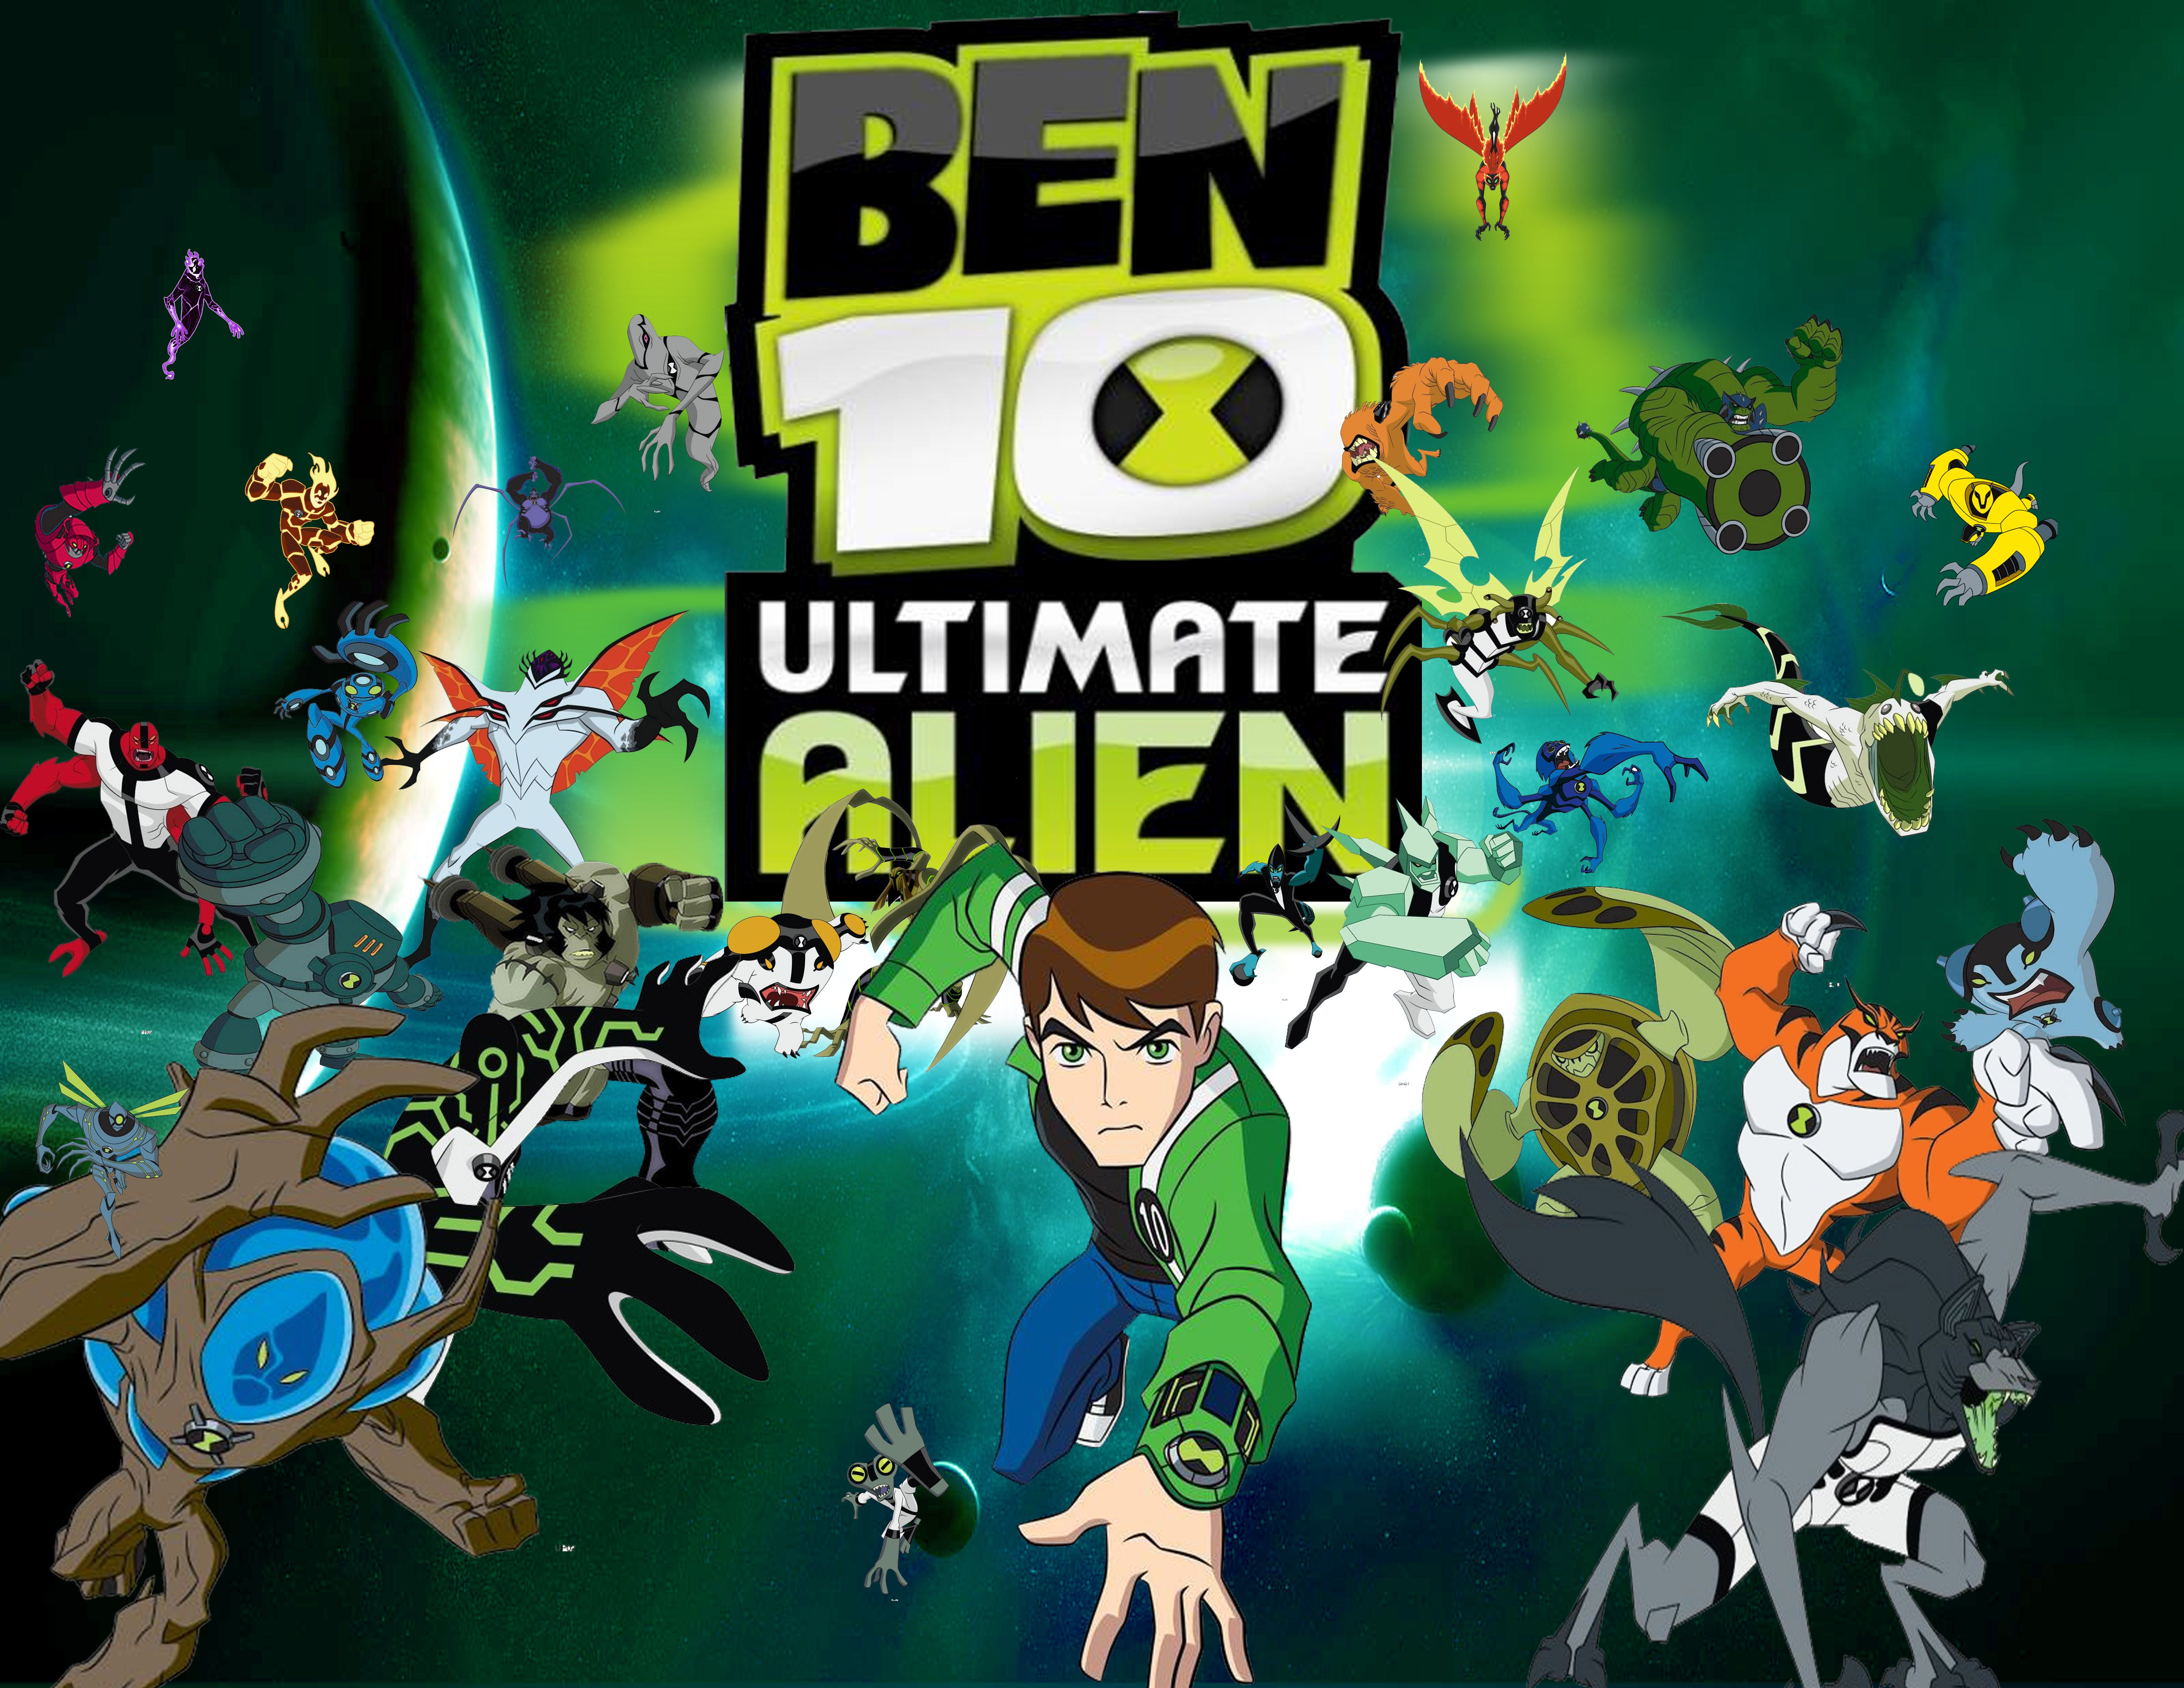 Ben 10 games game ben 10 ultimate alien full touchscreen game ben 10 ultimate alien full touchscreen fauzhie voltagebd Gallery